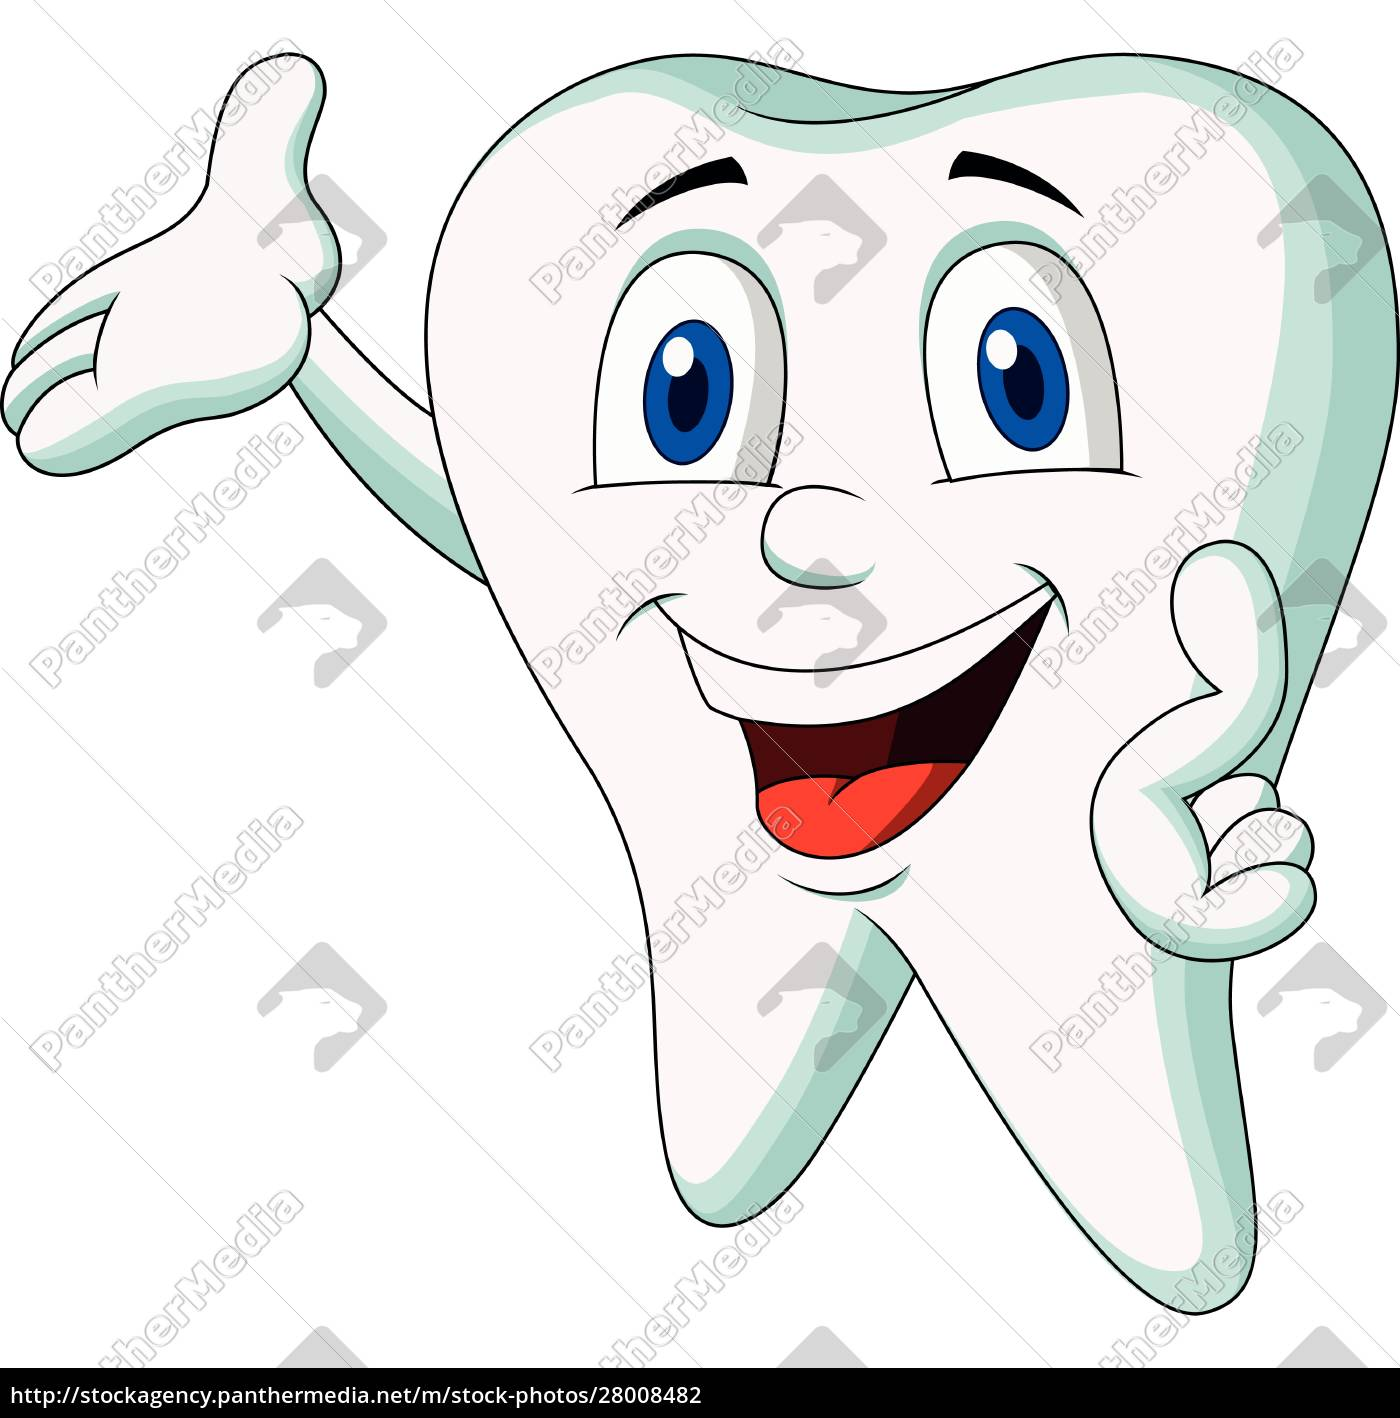 cute, tooth, cartoon, character, presenting - 28008482